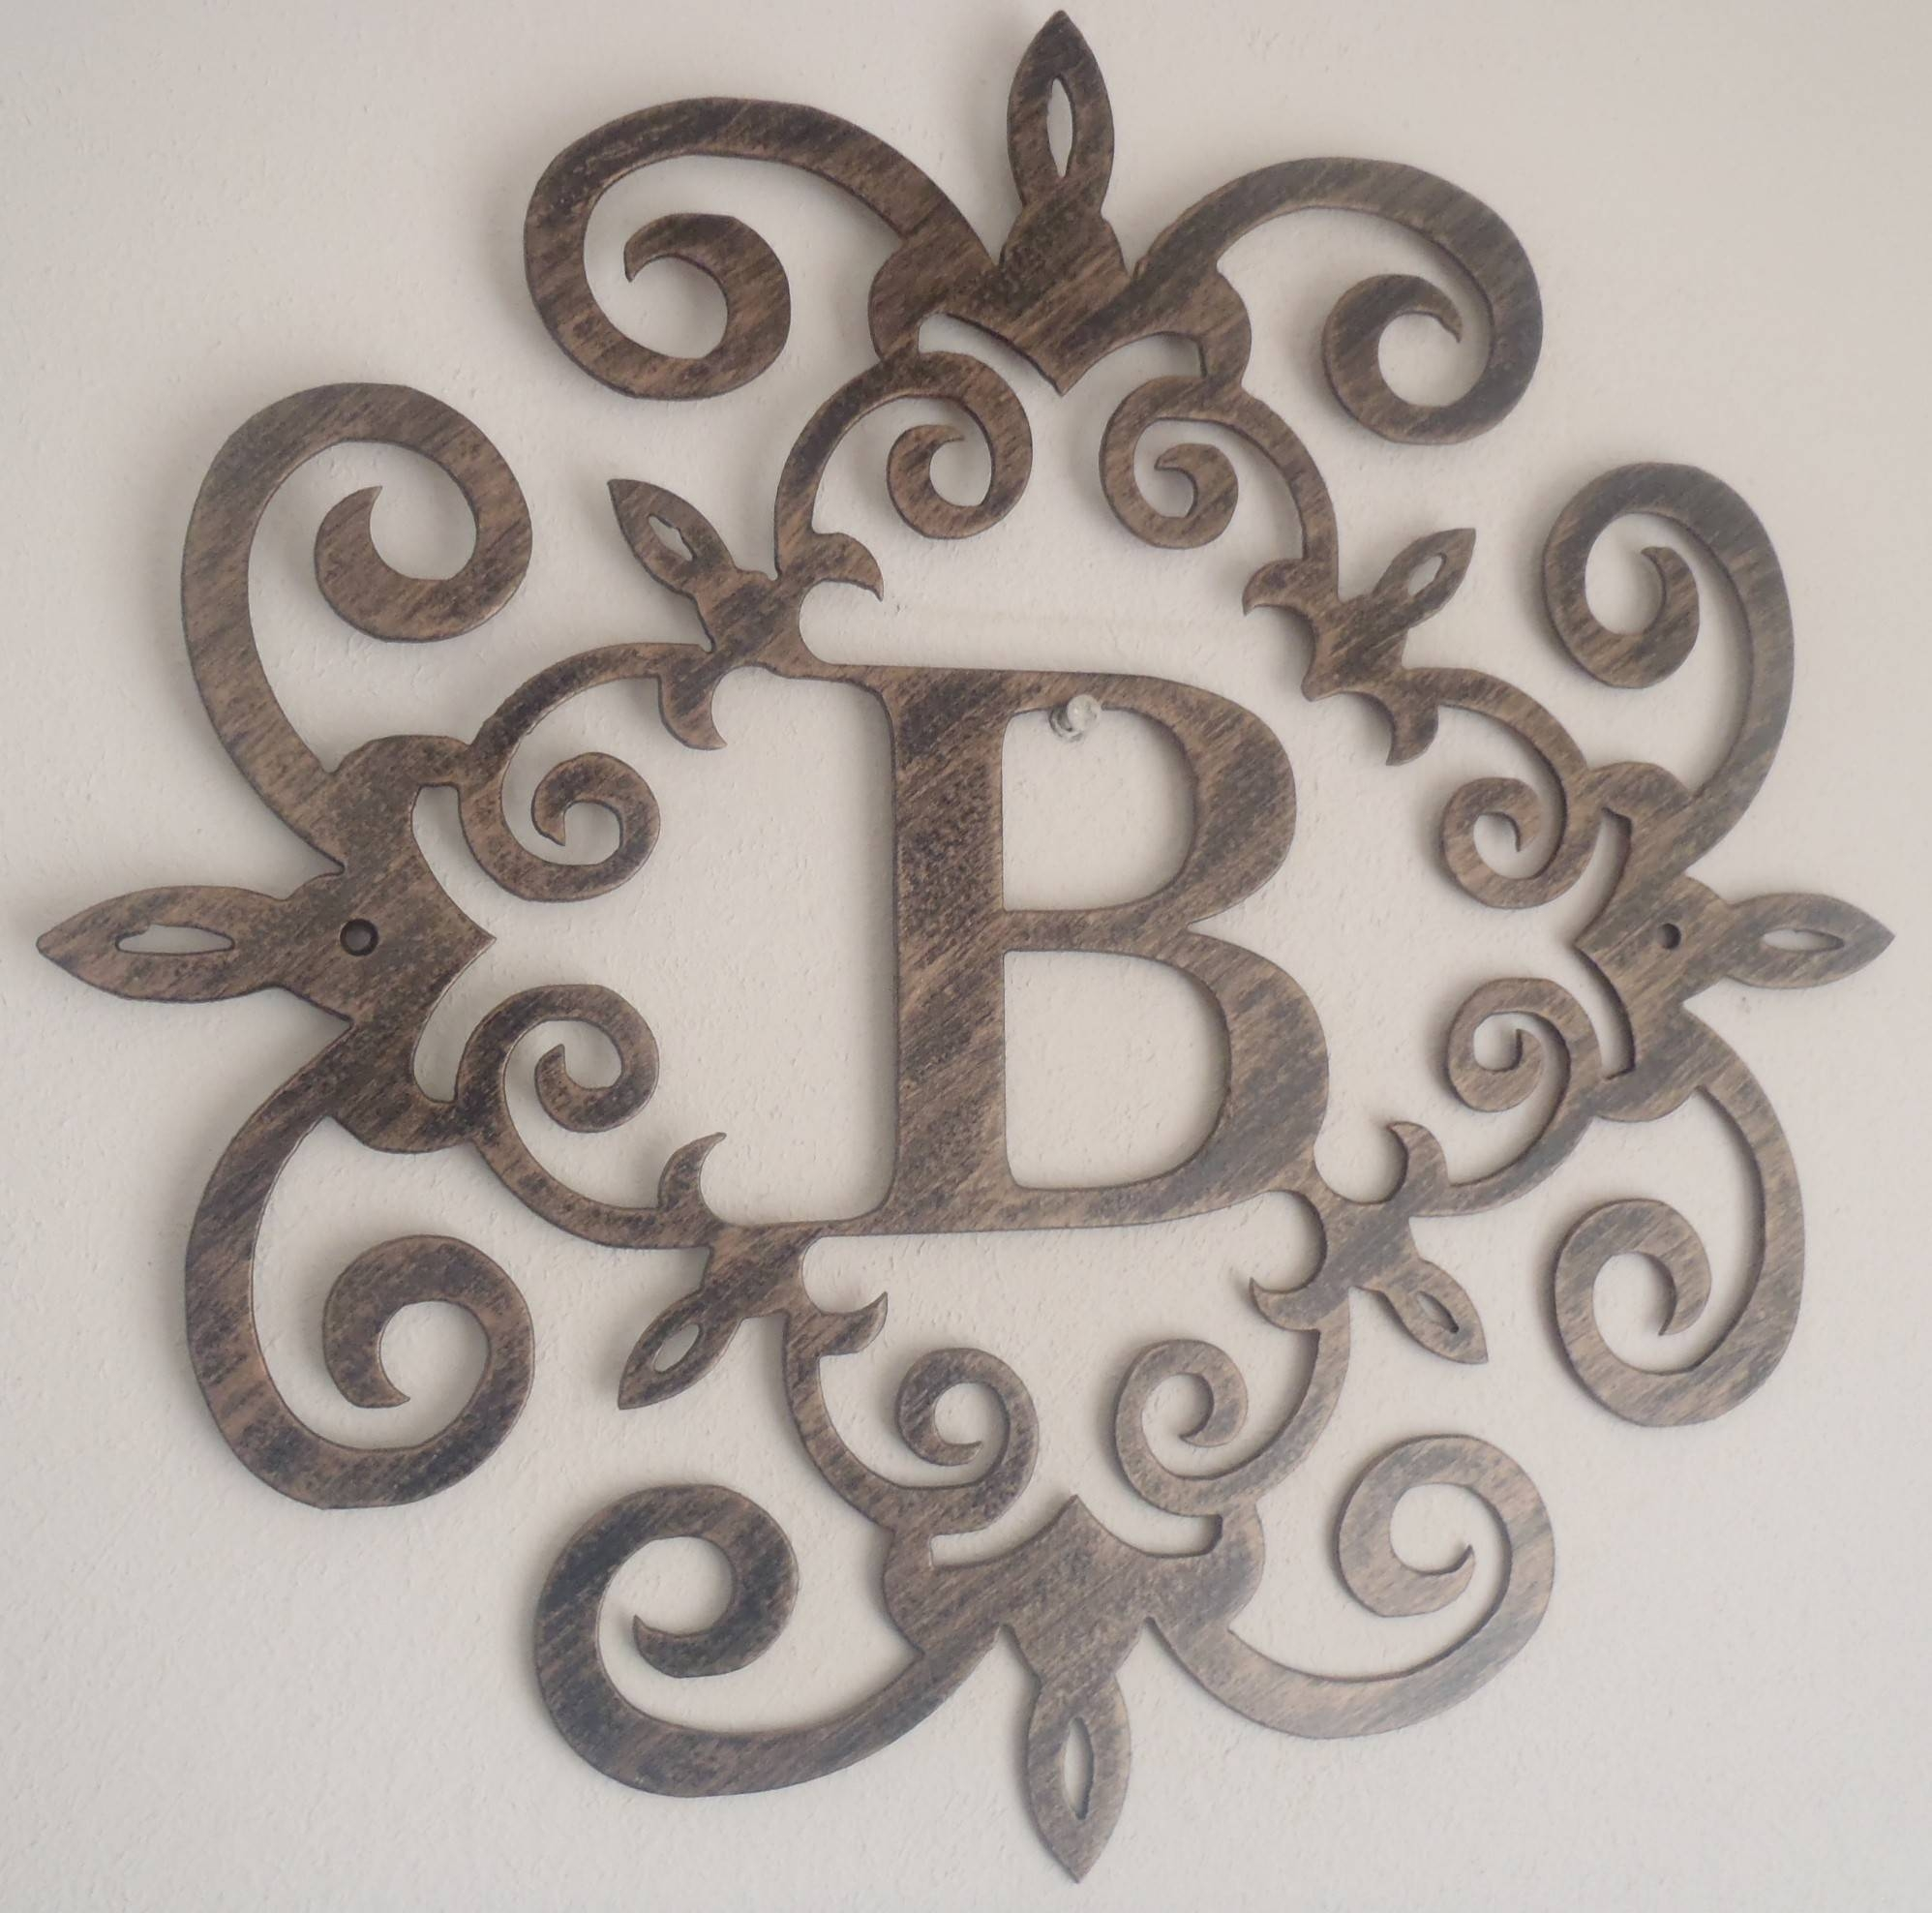 Decorating Large Metal Letters For Wall Decor | Jeffsbakery Within Most Recent Large Metal Wall Art And Decor (View 5 of 20)